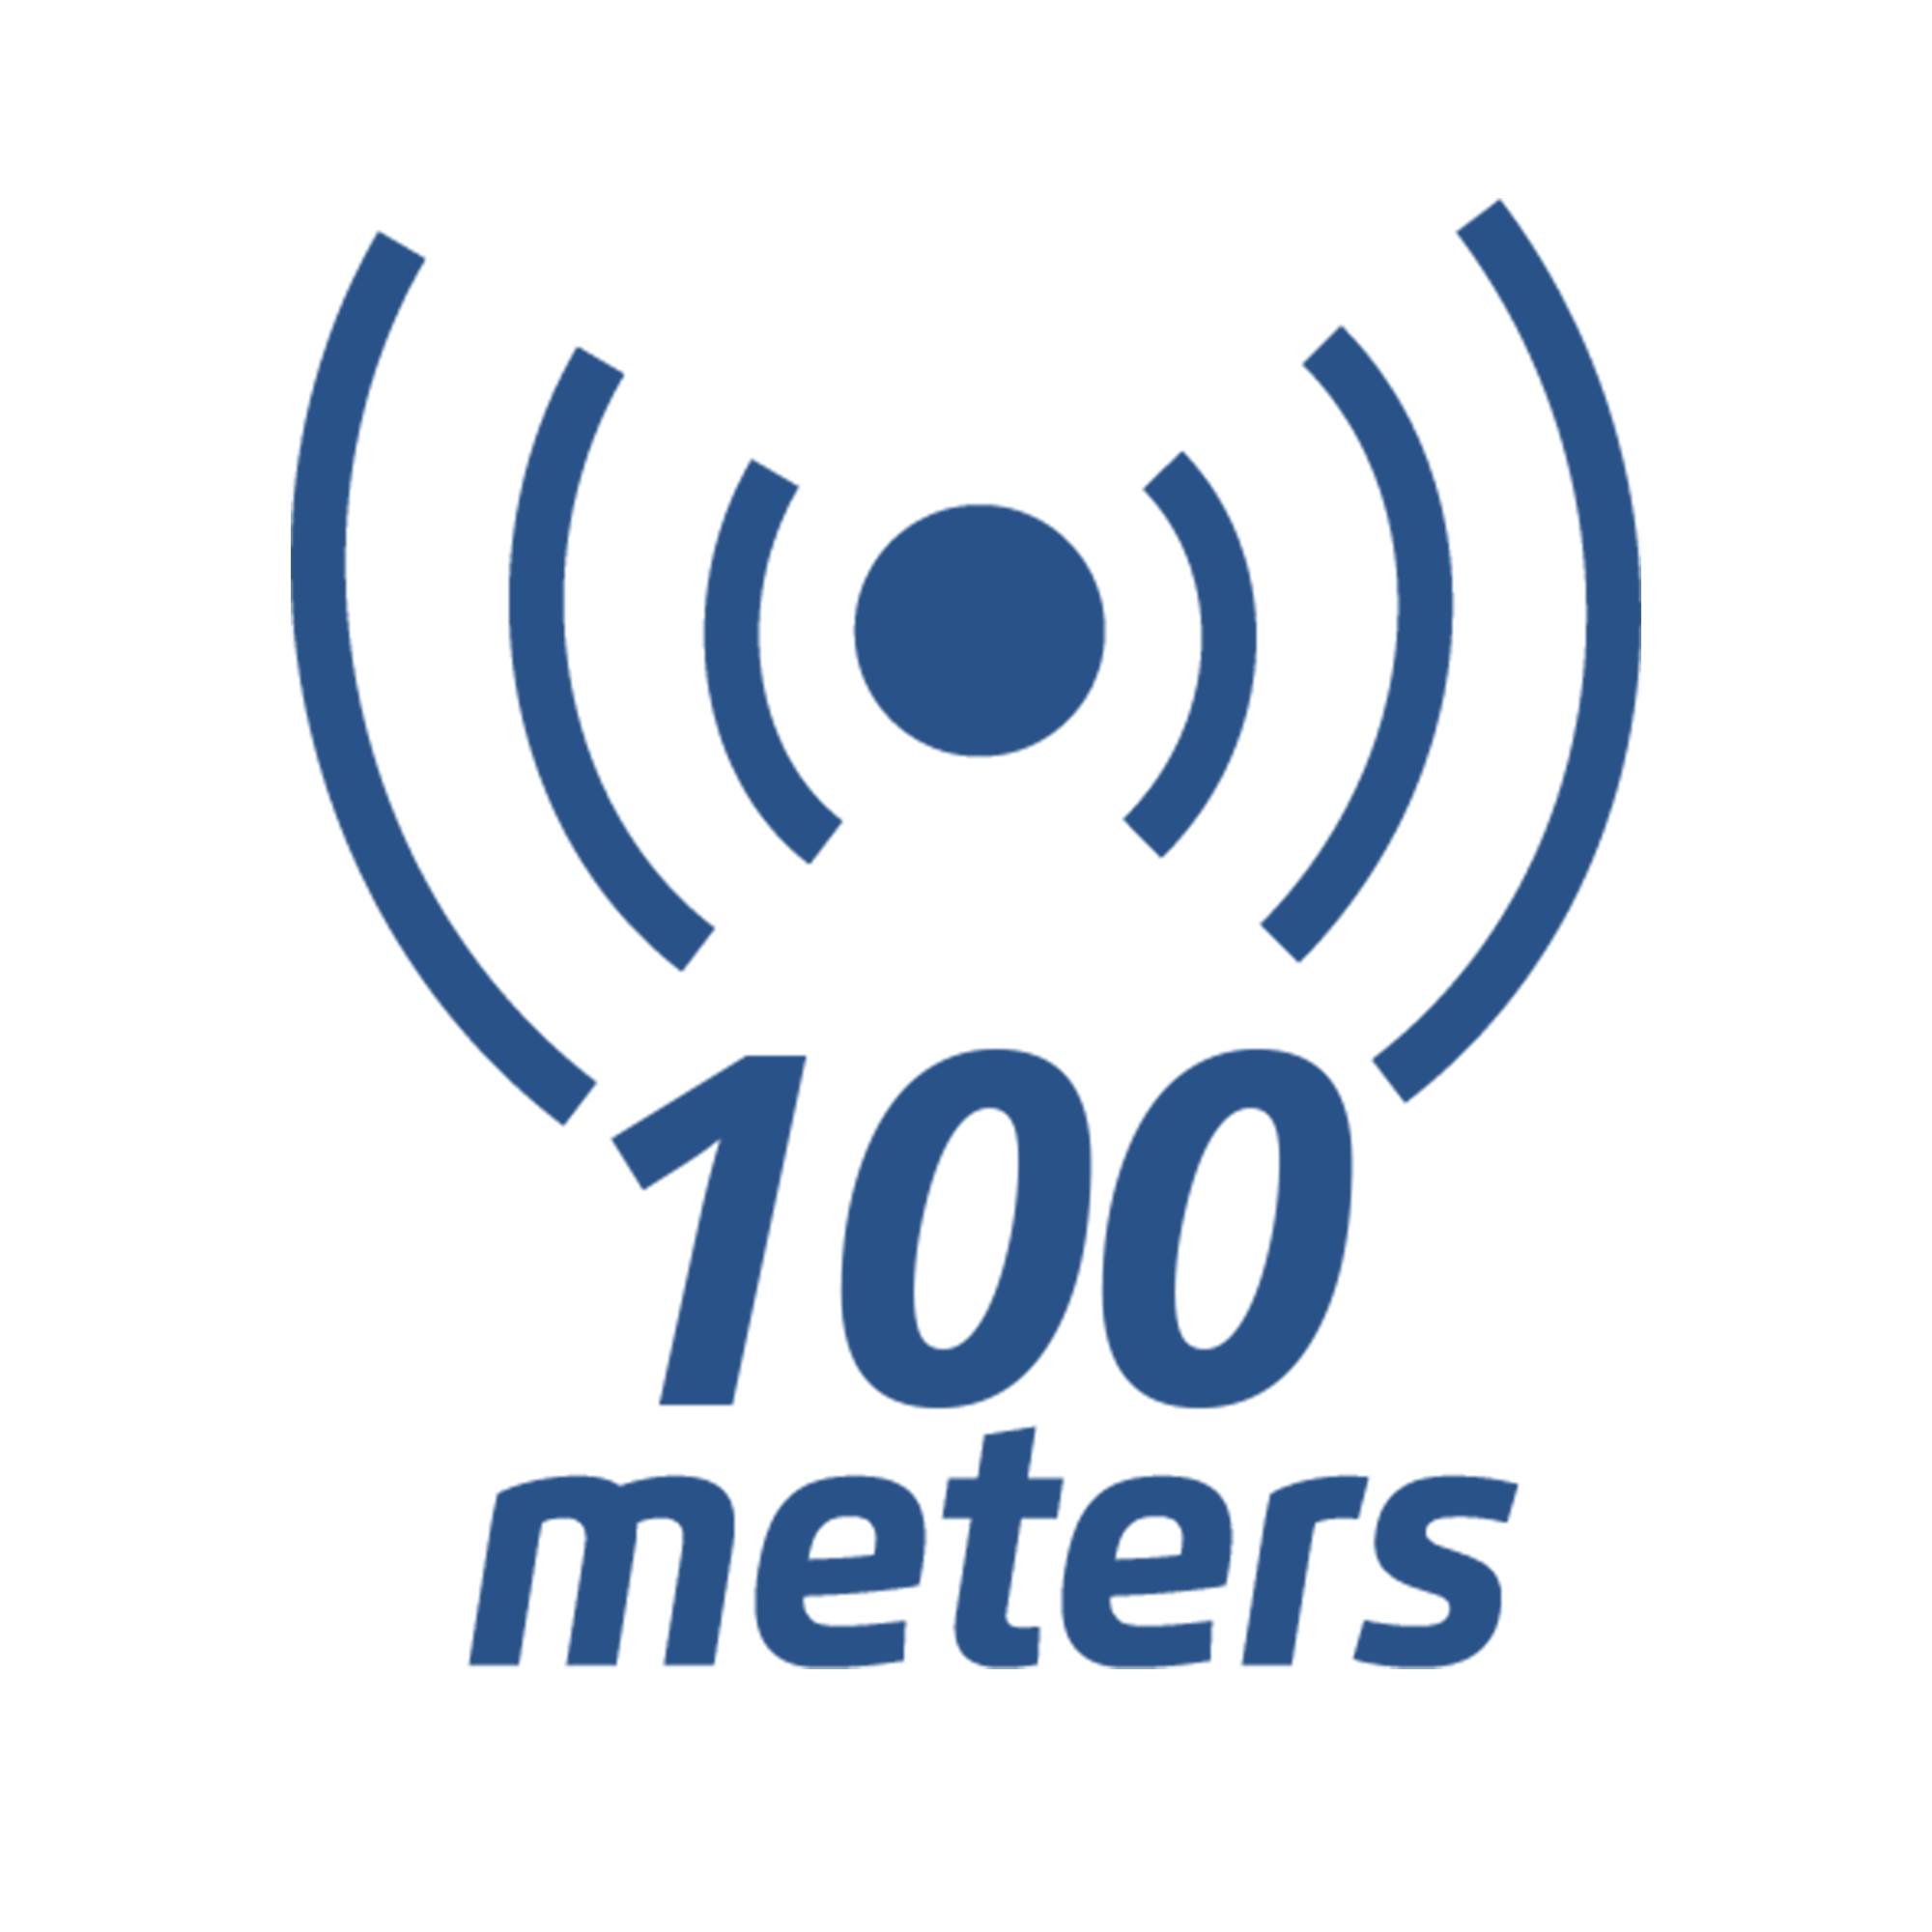 100_meters_icon